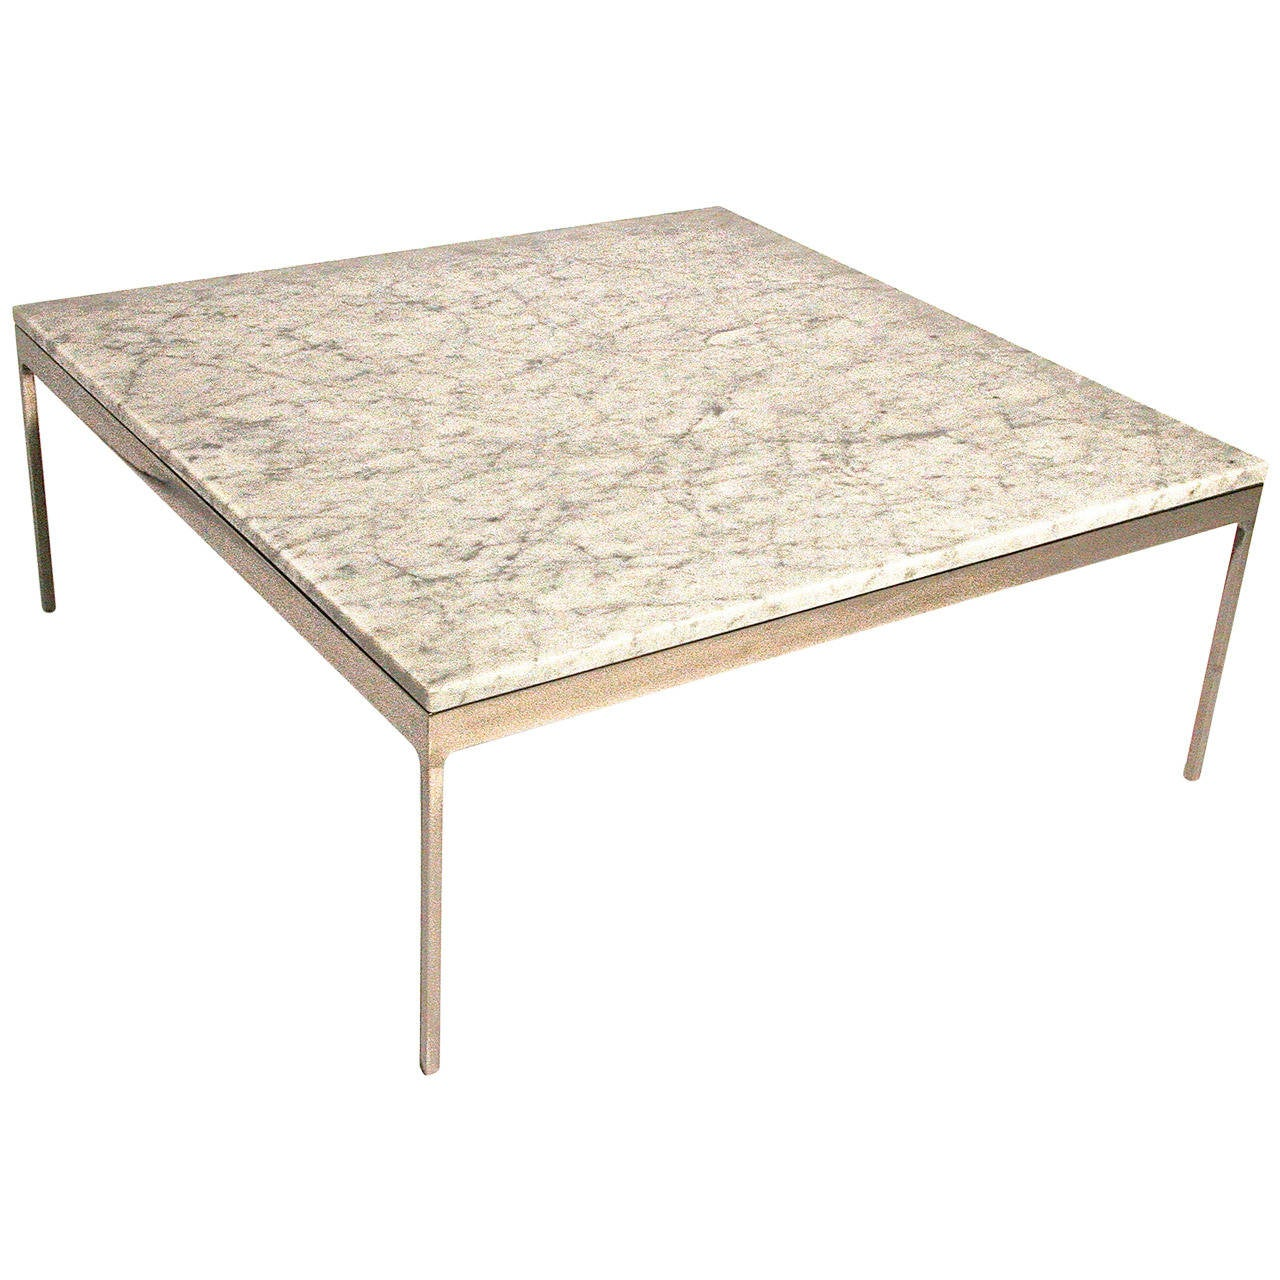 Nicos Zographos Marble And Stainless Steel Coffee Table At 1stdibs